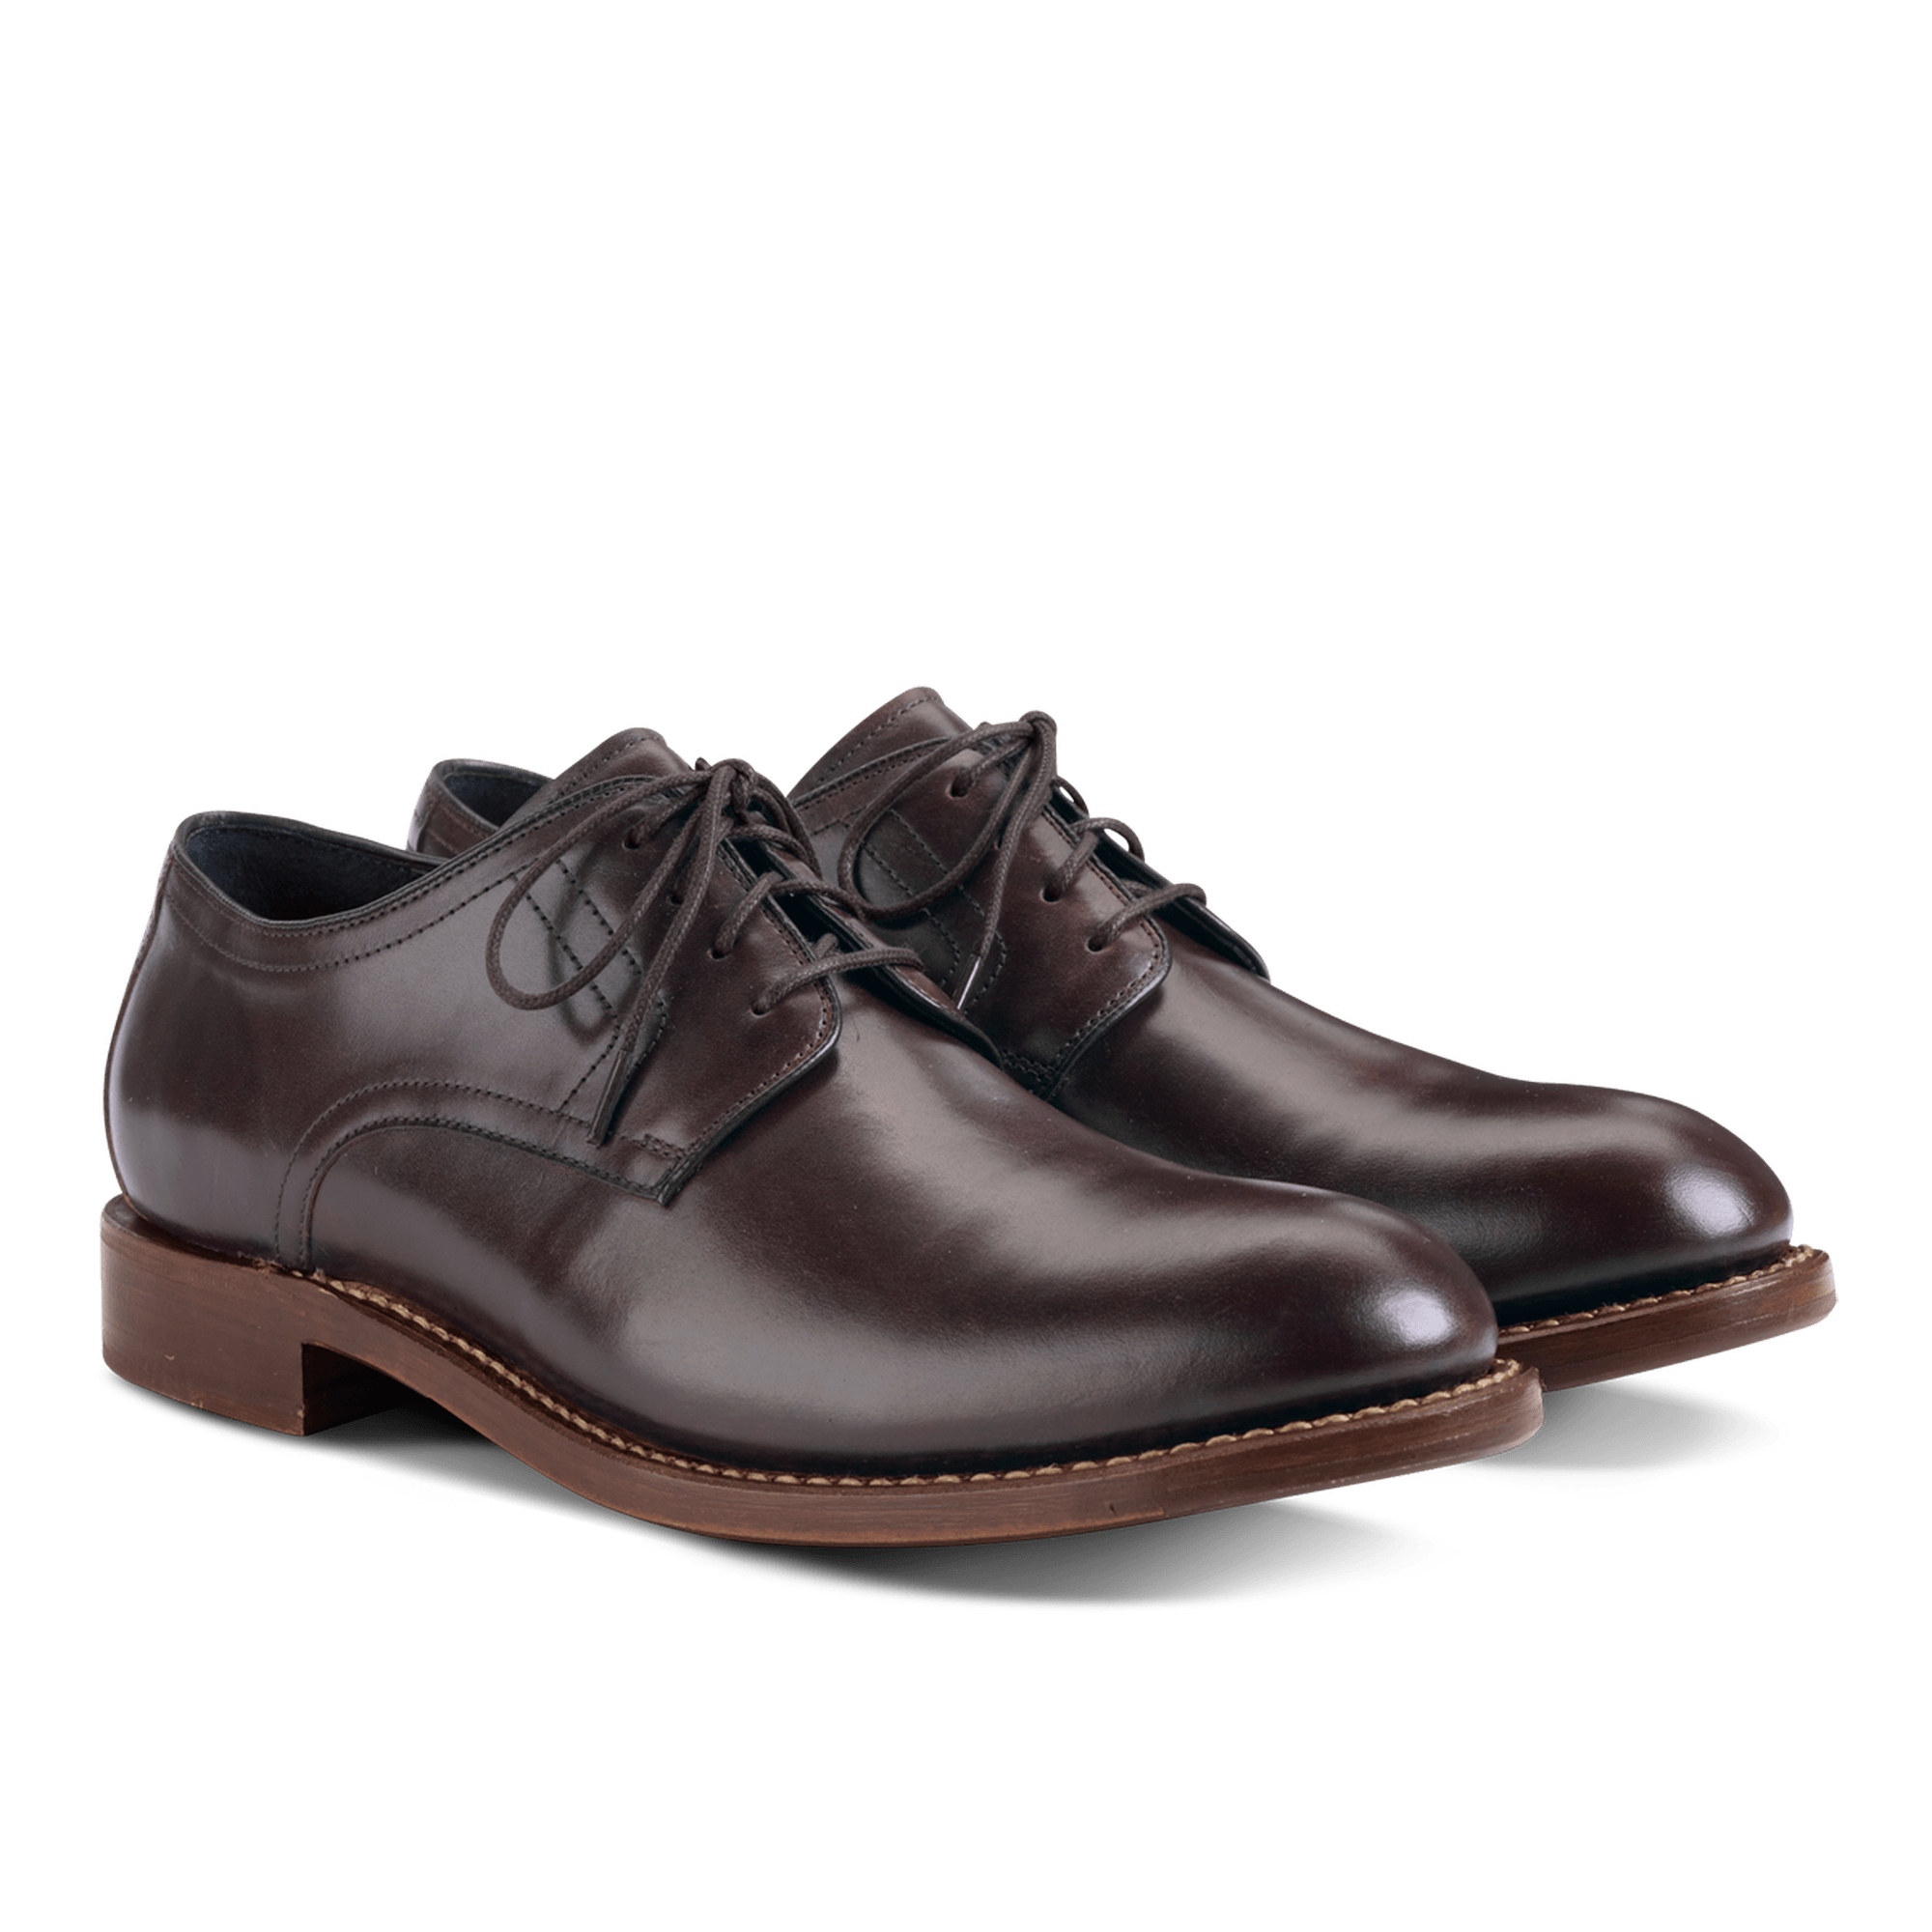 Dress shoe png. Pair of brown leather